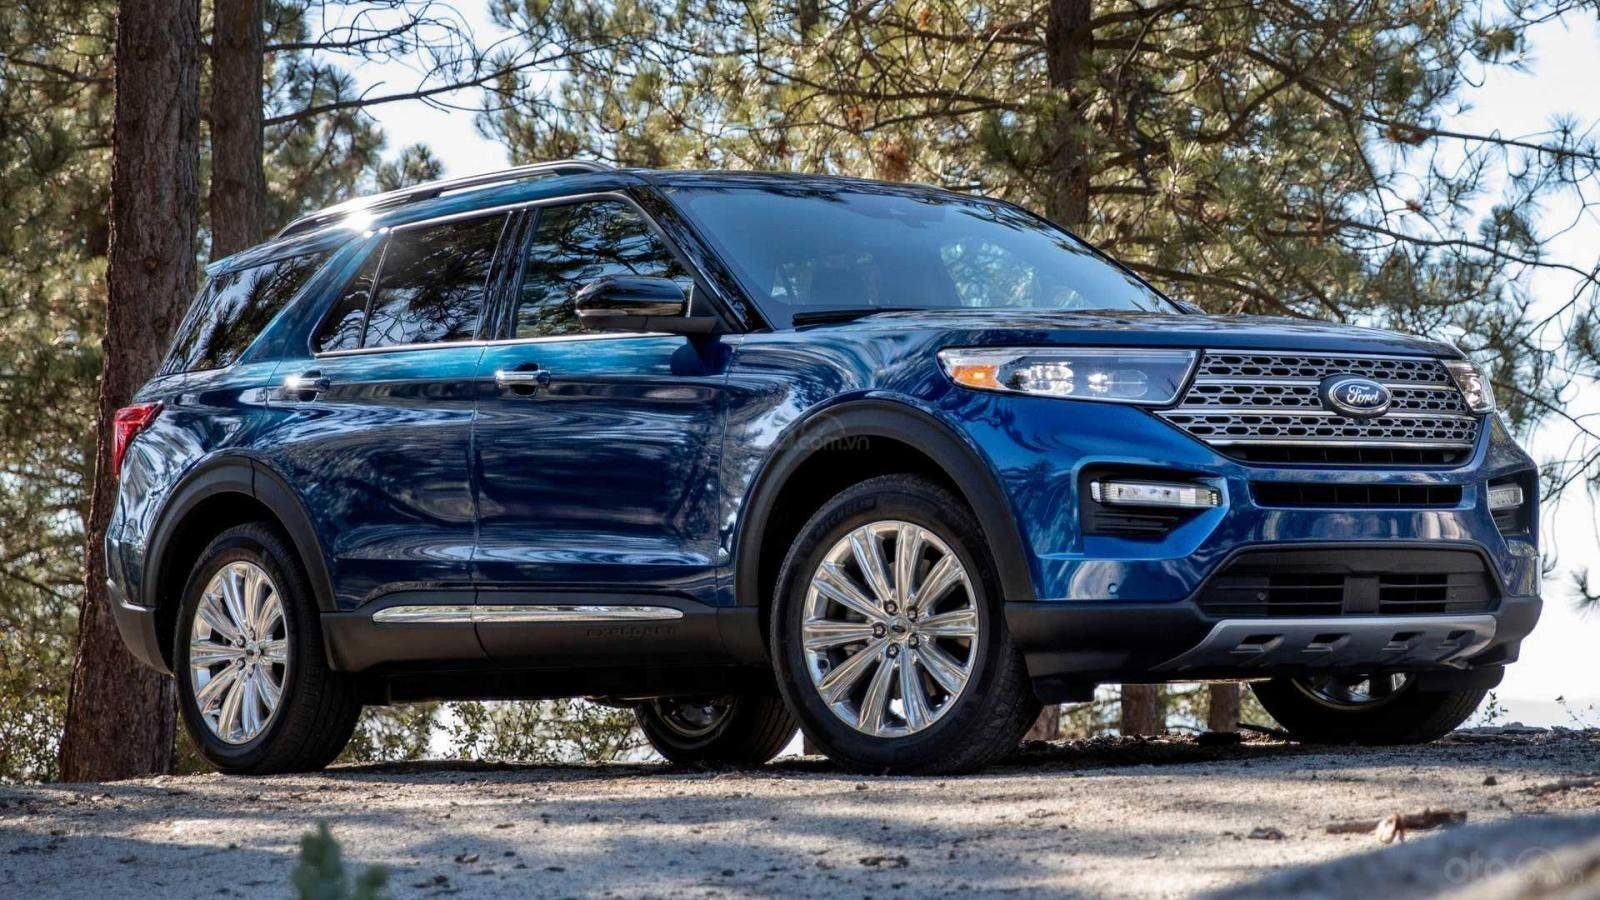 Xe Ford Explorer 2020 Photos In 2020 Ford Explorer Ford Suv 2020 Ford Explorer